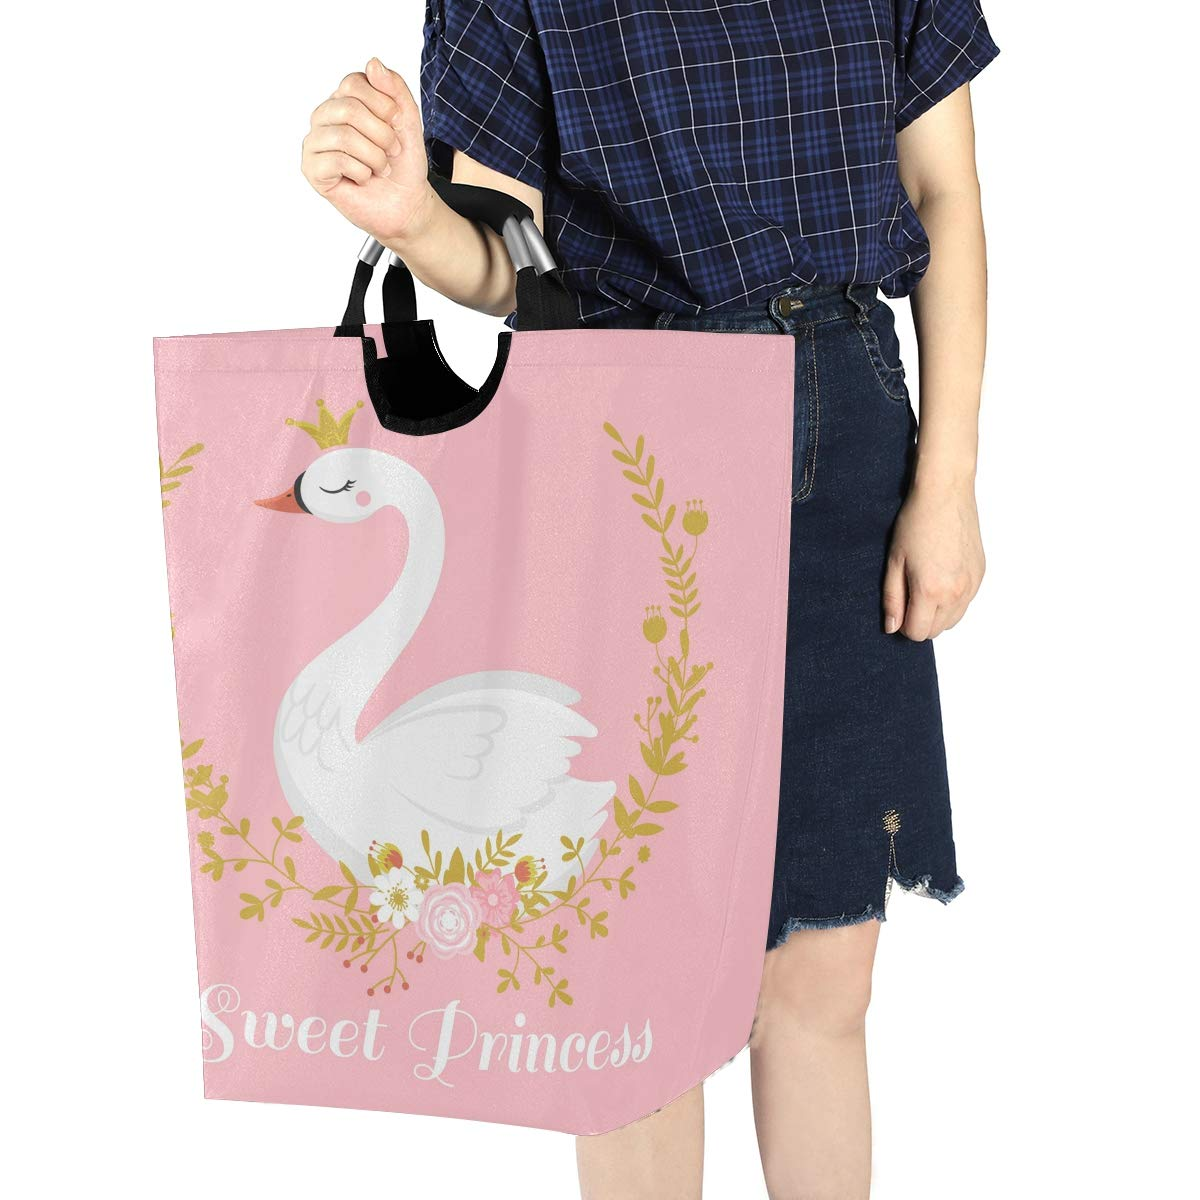 OREZI Cute Swan Princess Laundry Hamper,Waterproof and Foldable Laundry Bag with Handles for Baby Nursery College Dorms Kids Bedroom Bathroom